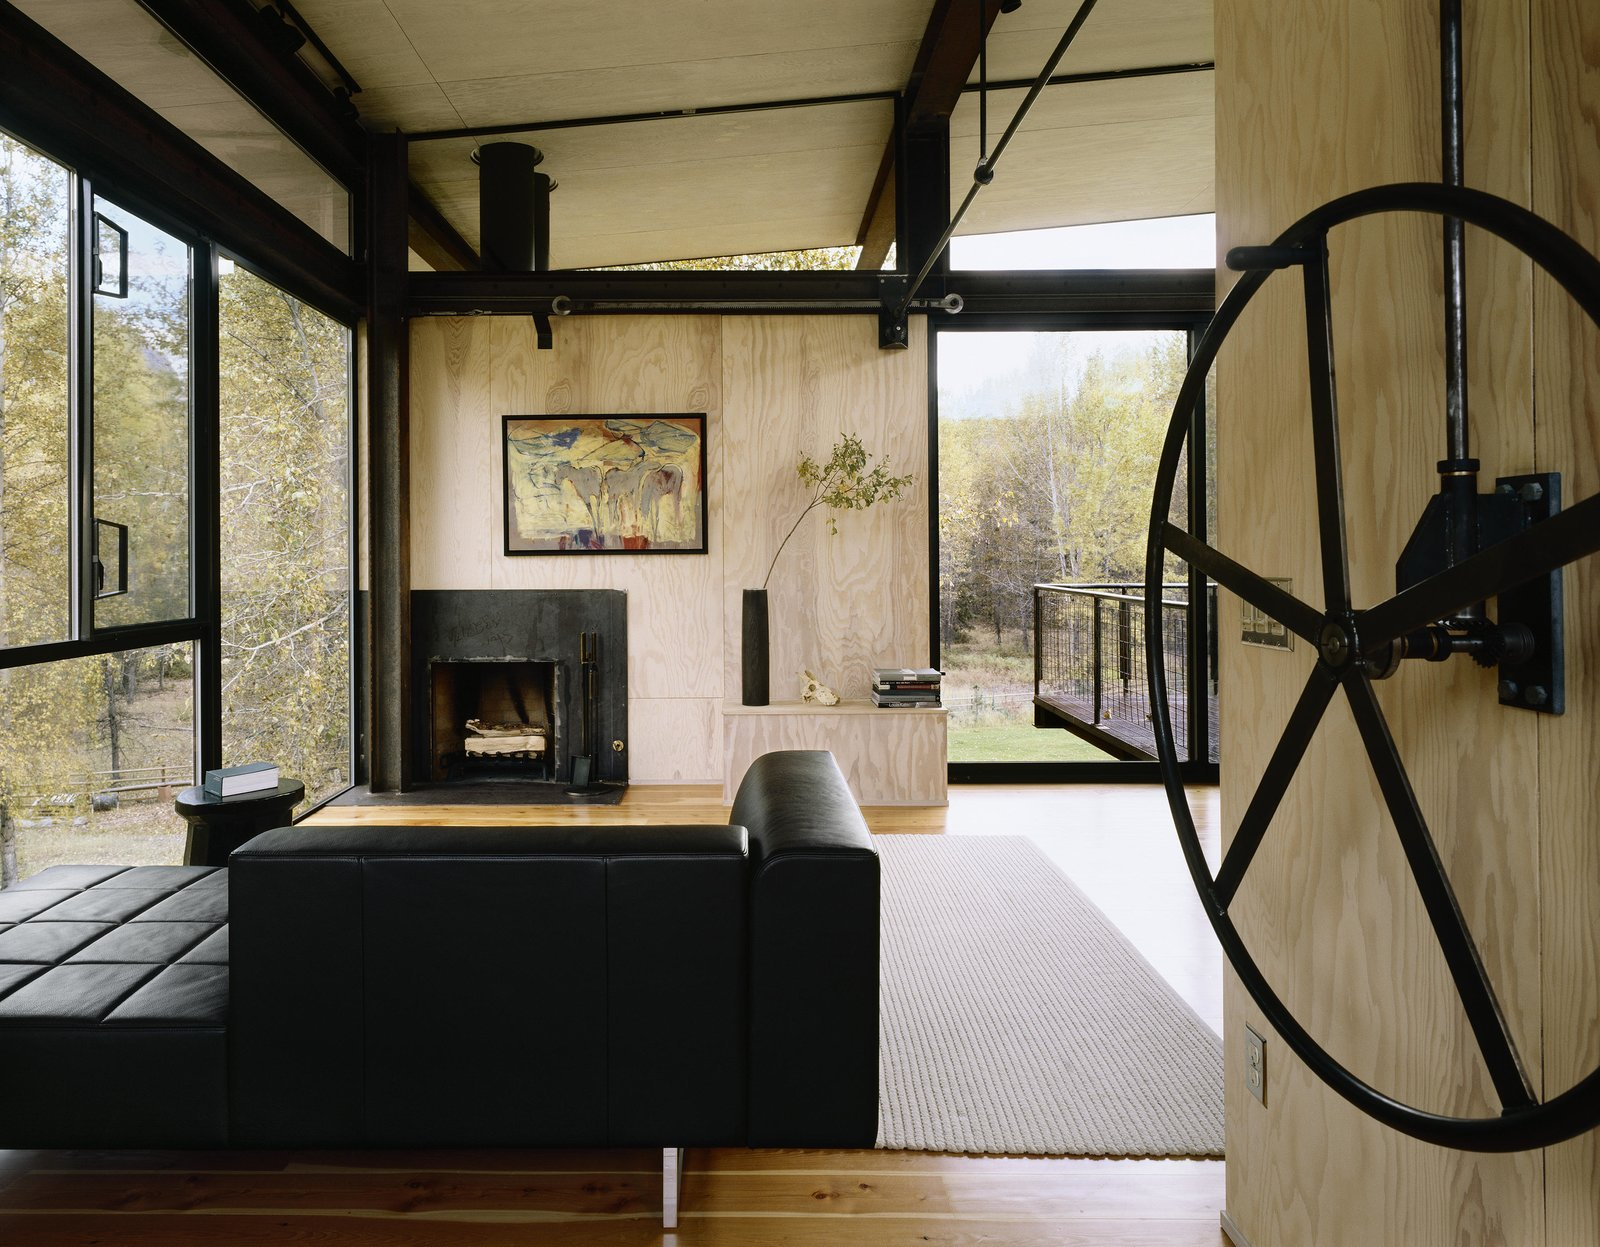 Shelter Floor Plan With Fireplace : Delta shelter by olson kundig dwell